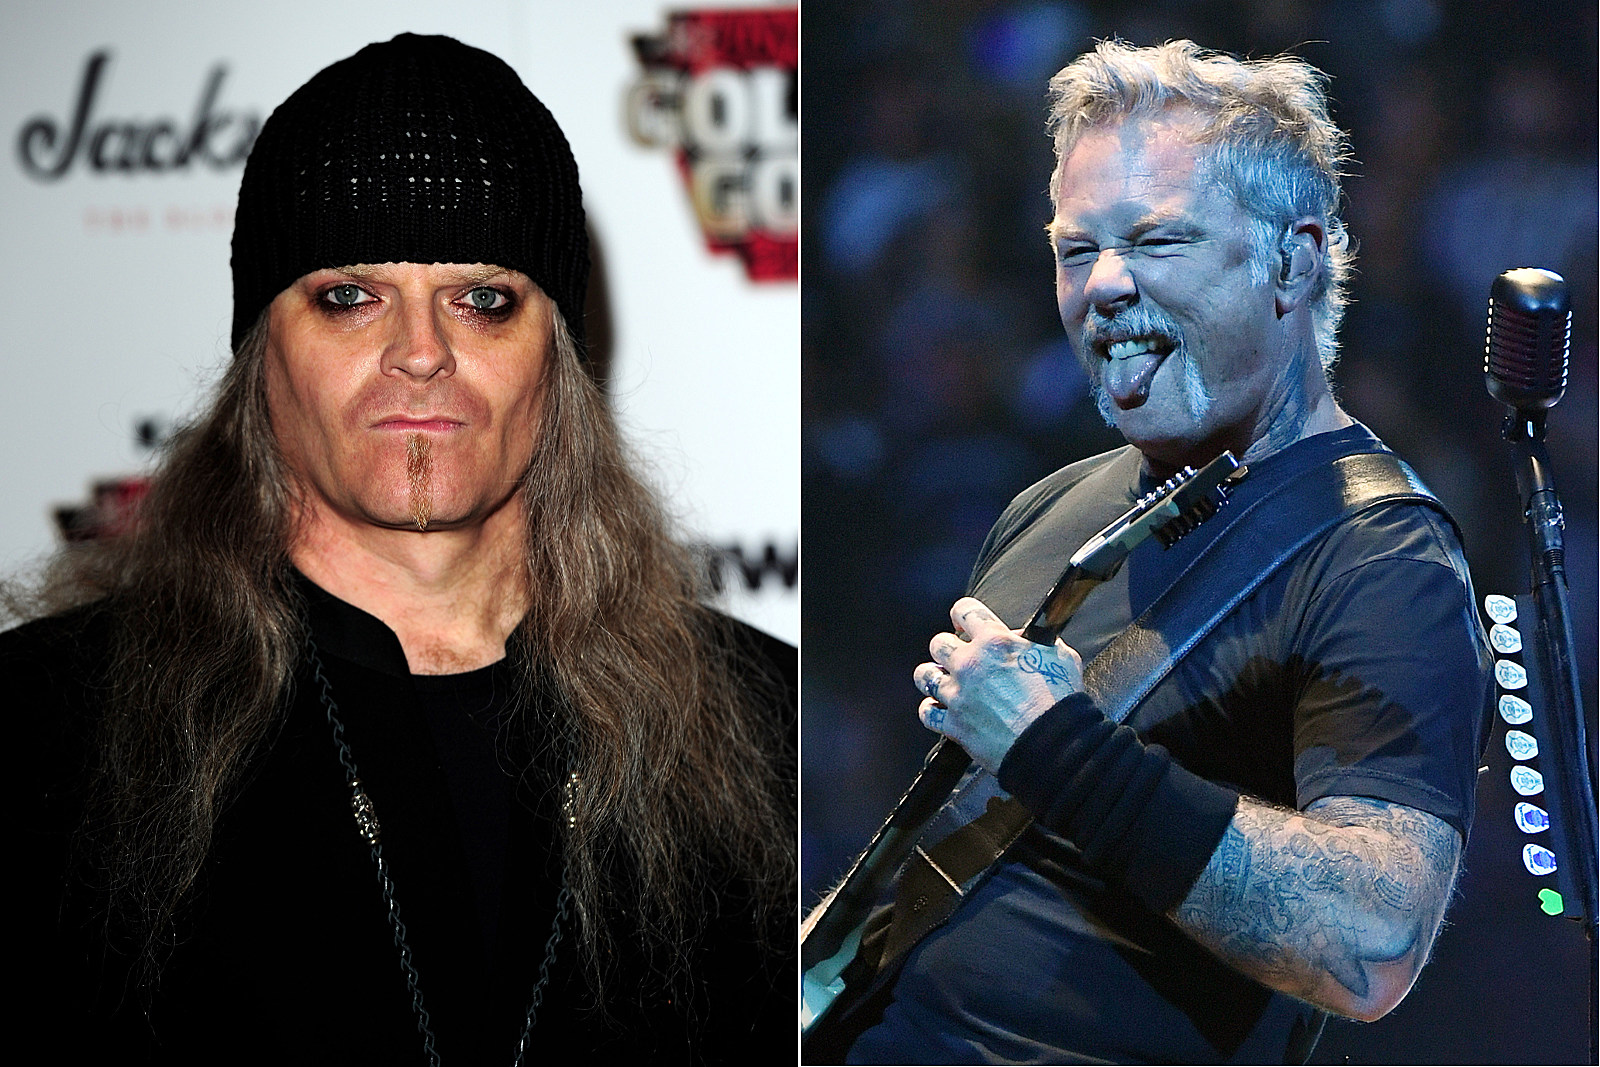 Celtic Frost Frontman Says Metallica 'Butchered' His Songs